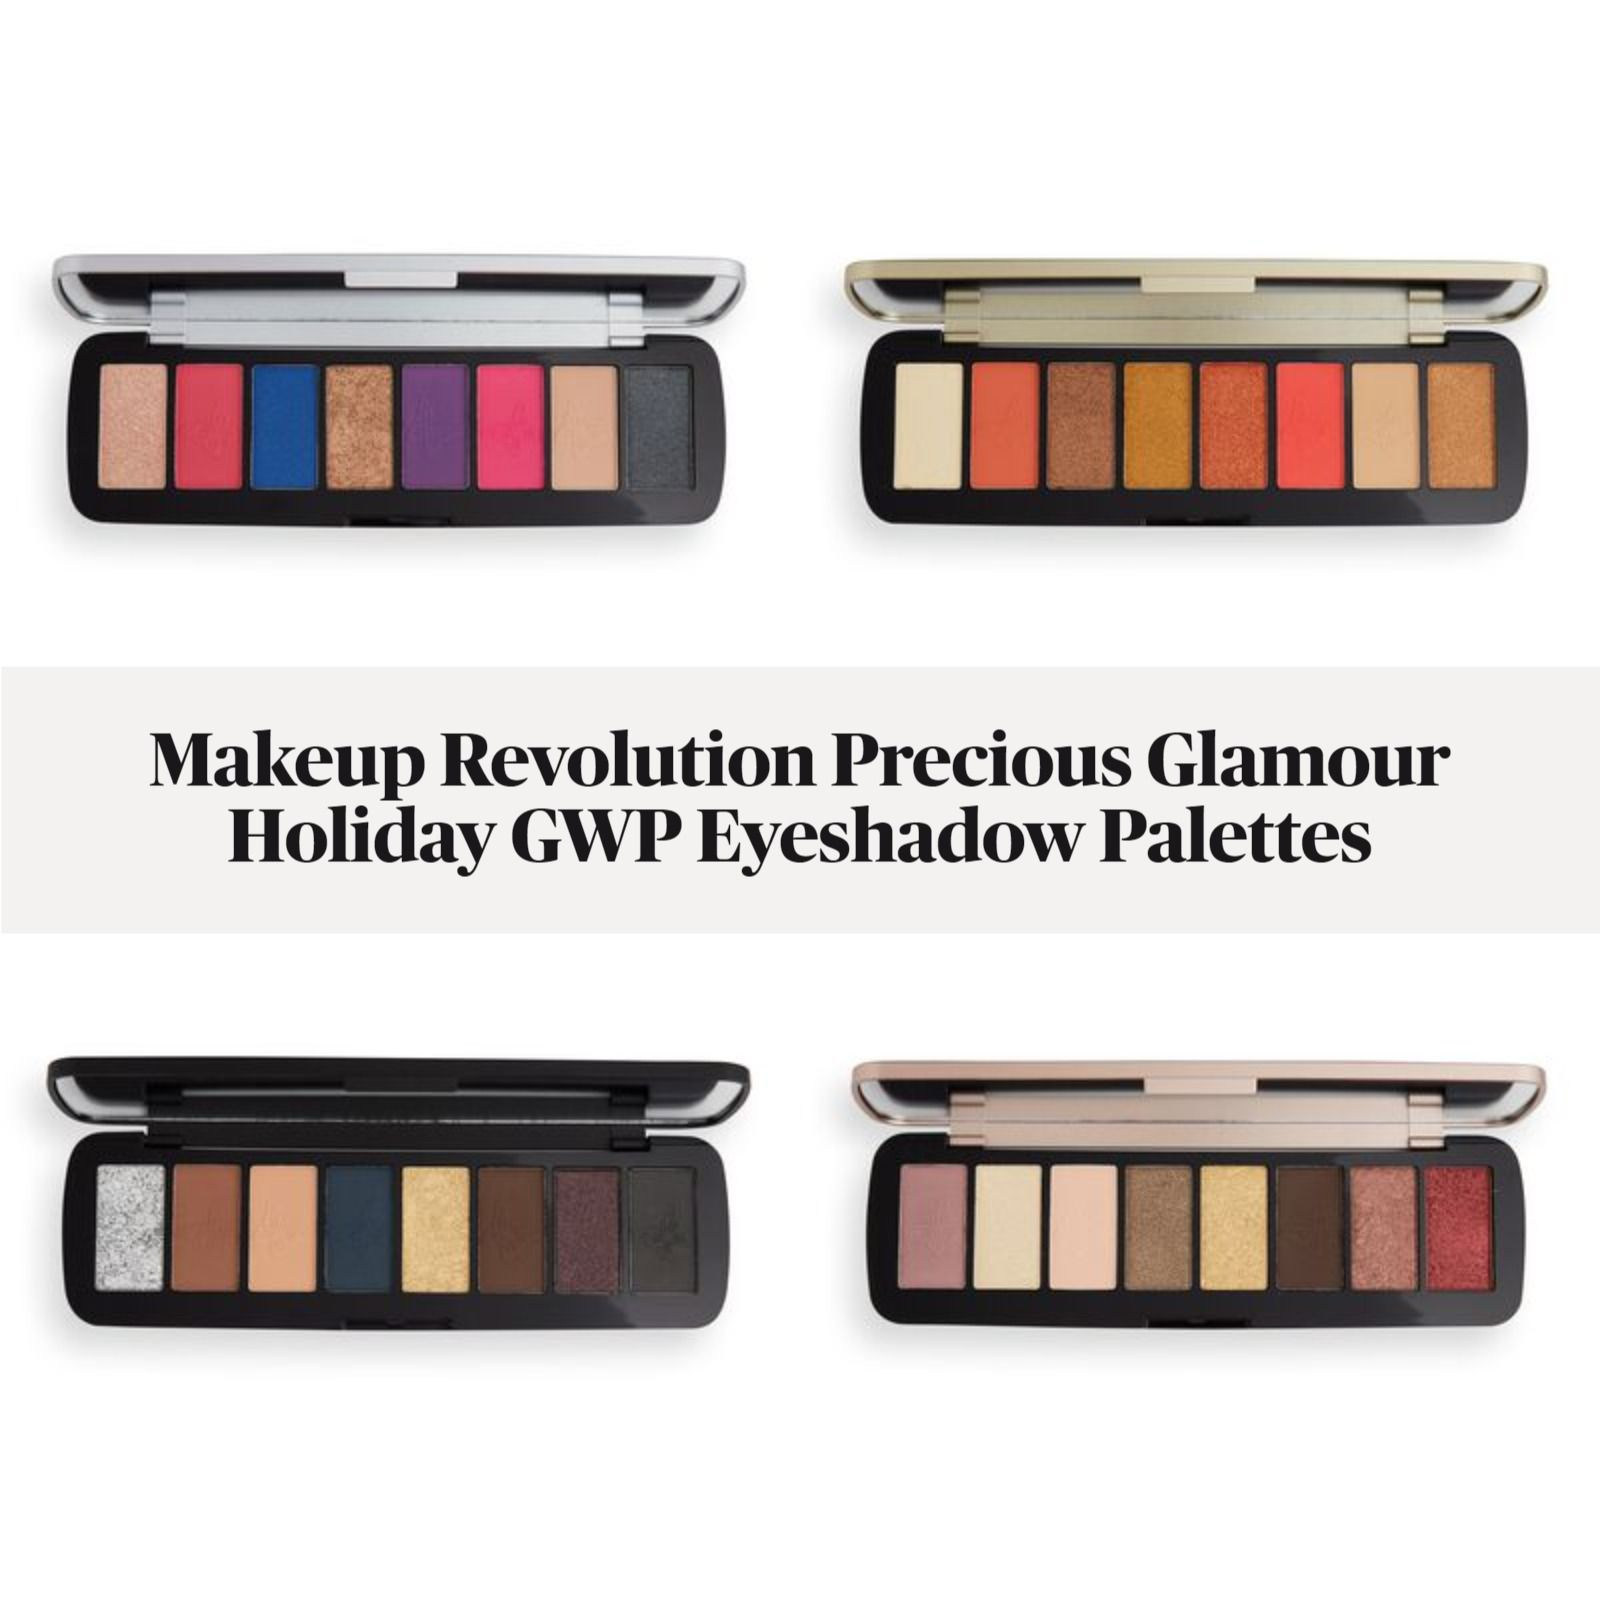 Makeup Revolution Precious Glamour Holiday GWP Eyeshadow Palettes